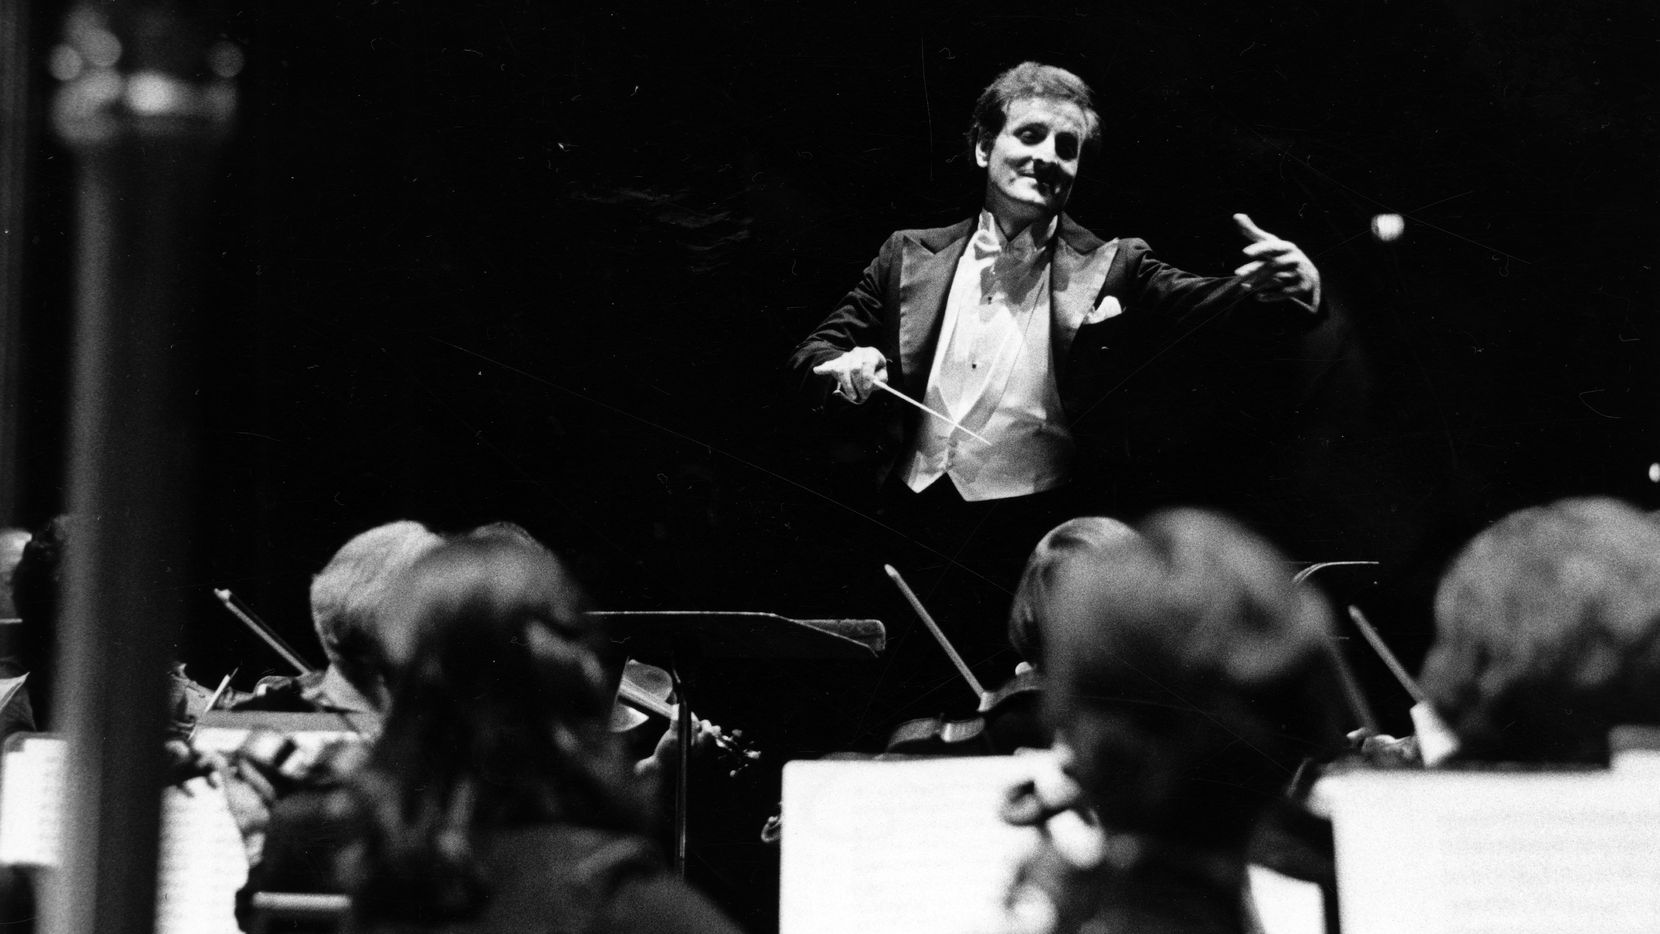 Foto de archivo de: Dallas Public Library - Texas/Dallas History y The Dallas Morning News Collection del 1 de septiembre de 1978 donde se ve a Eduardo Mata con la   Dallas Symphony Orchestra.